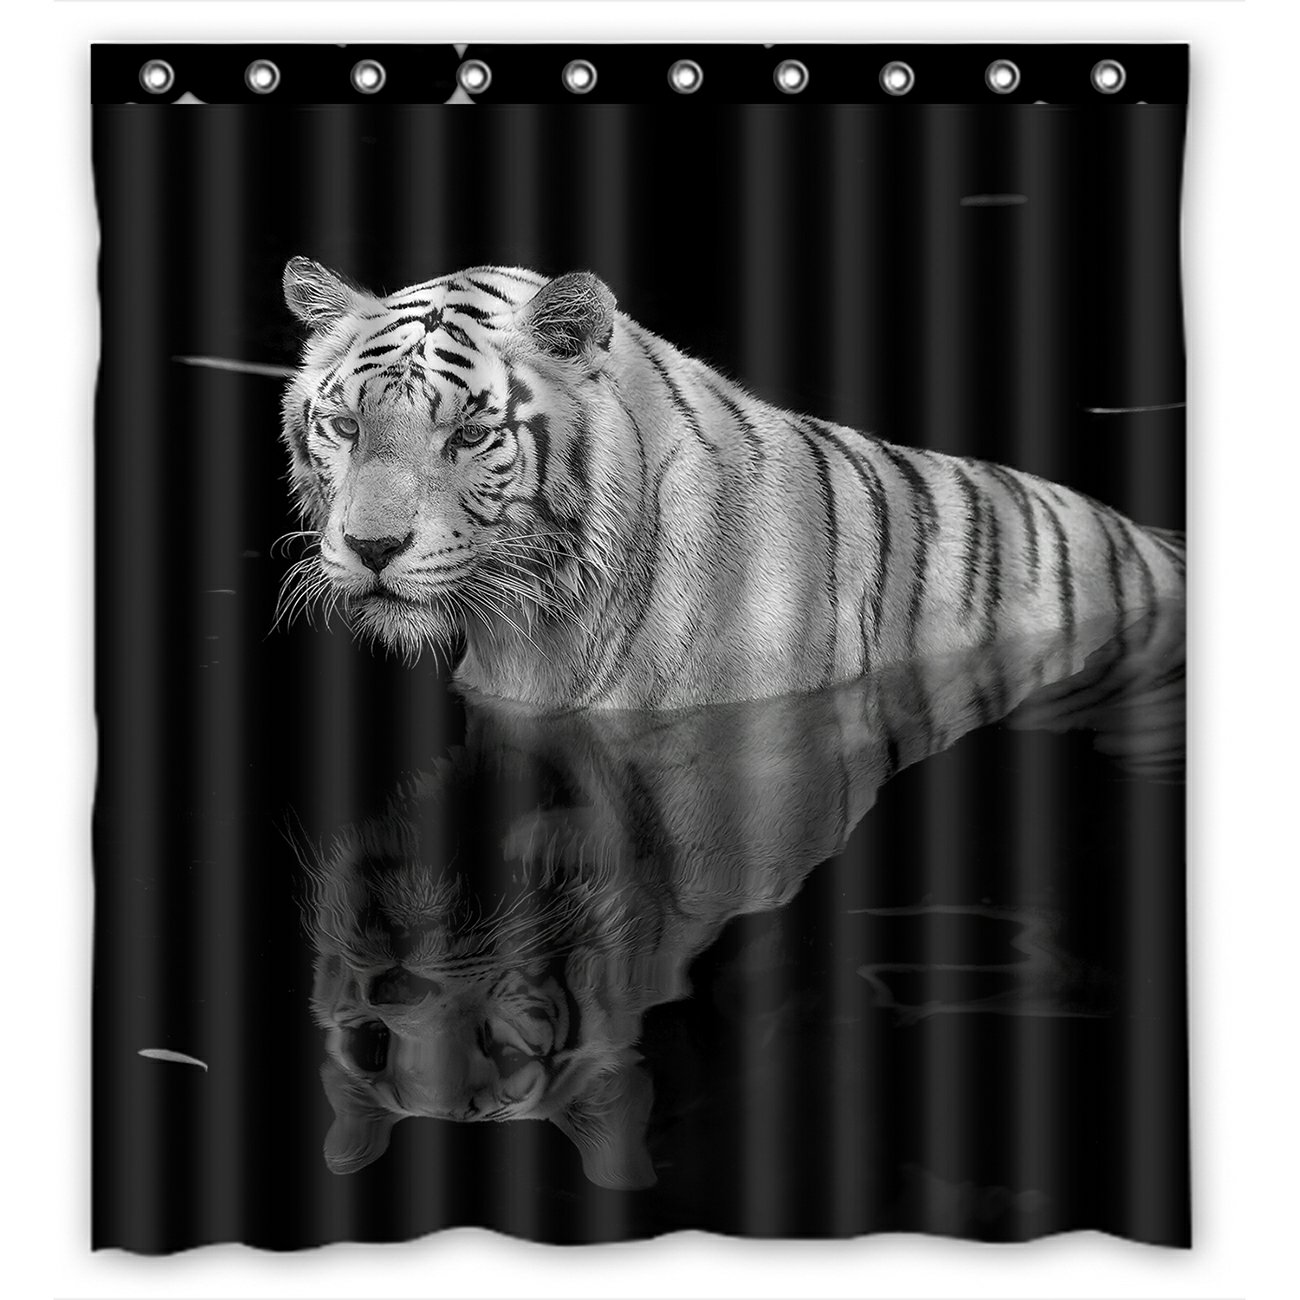 https www walmart com ip phfzk animal shower curtain black and white tiger standing in water polyester fabric bathroom shower curtain 66x72 inches 748775669